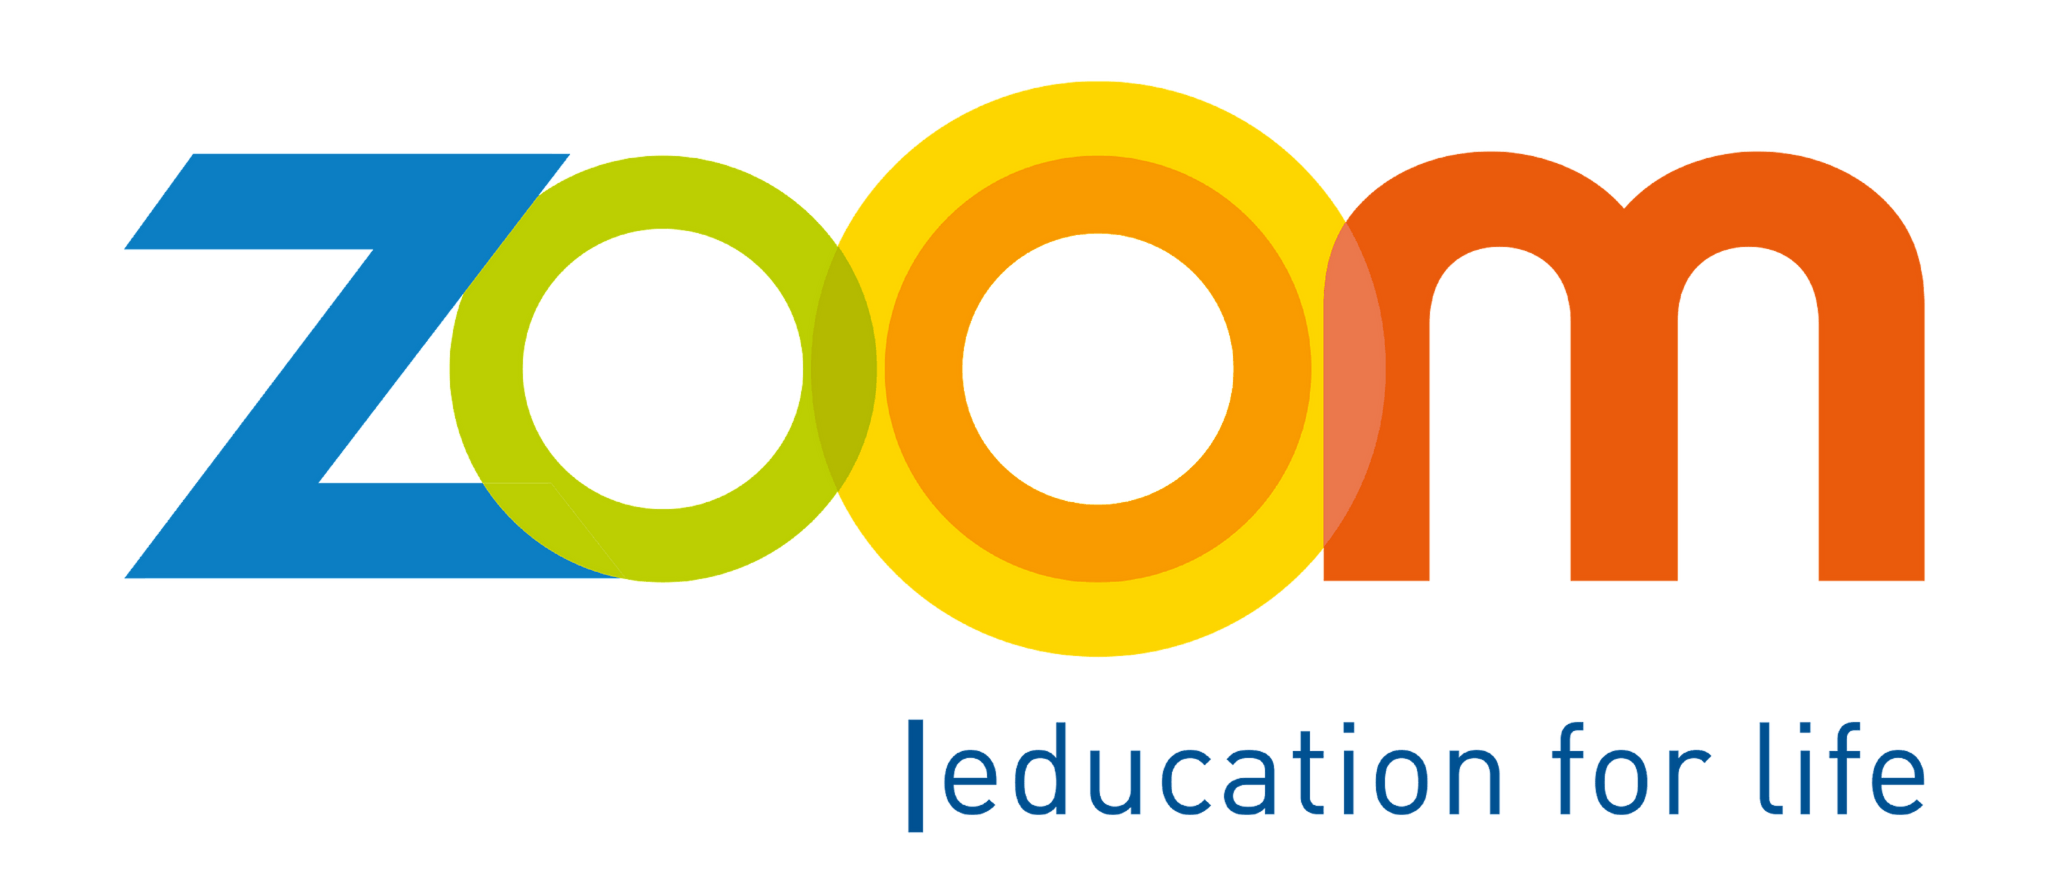 ZOOM education for life